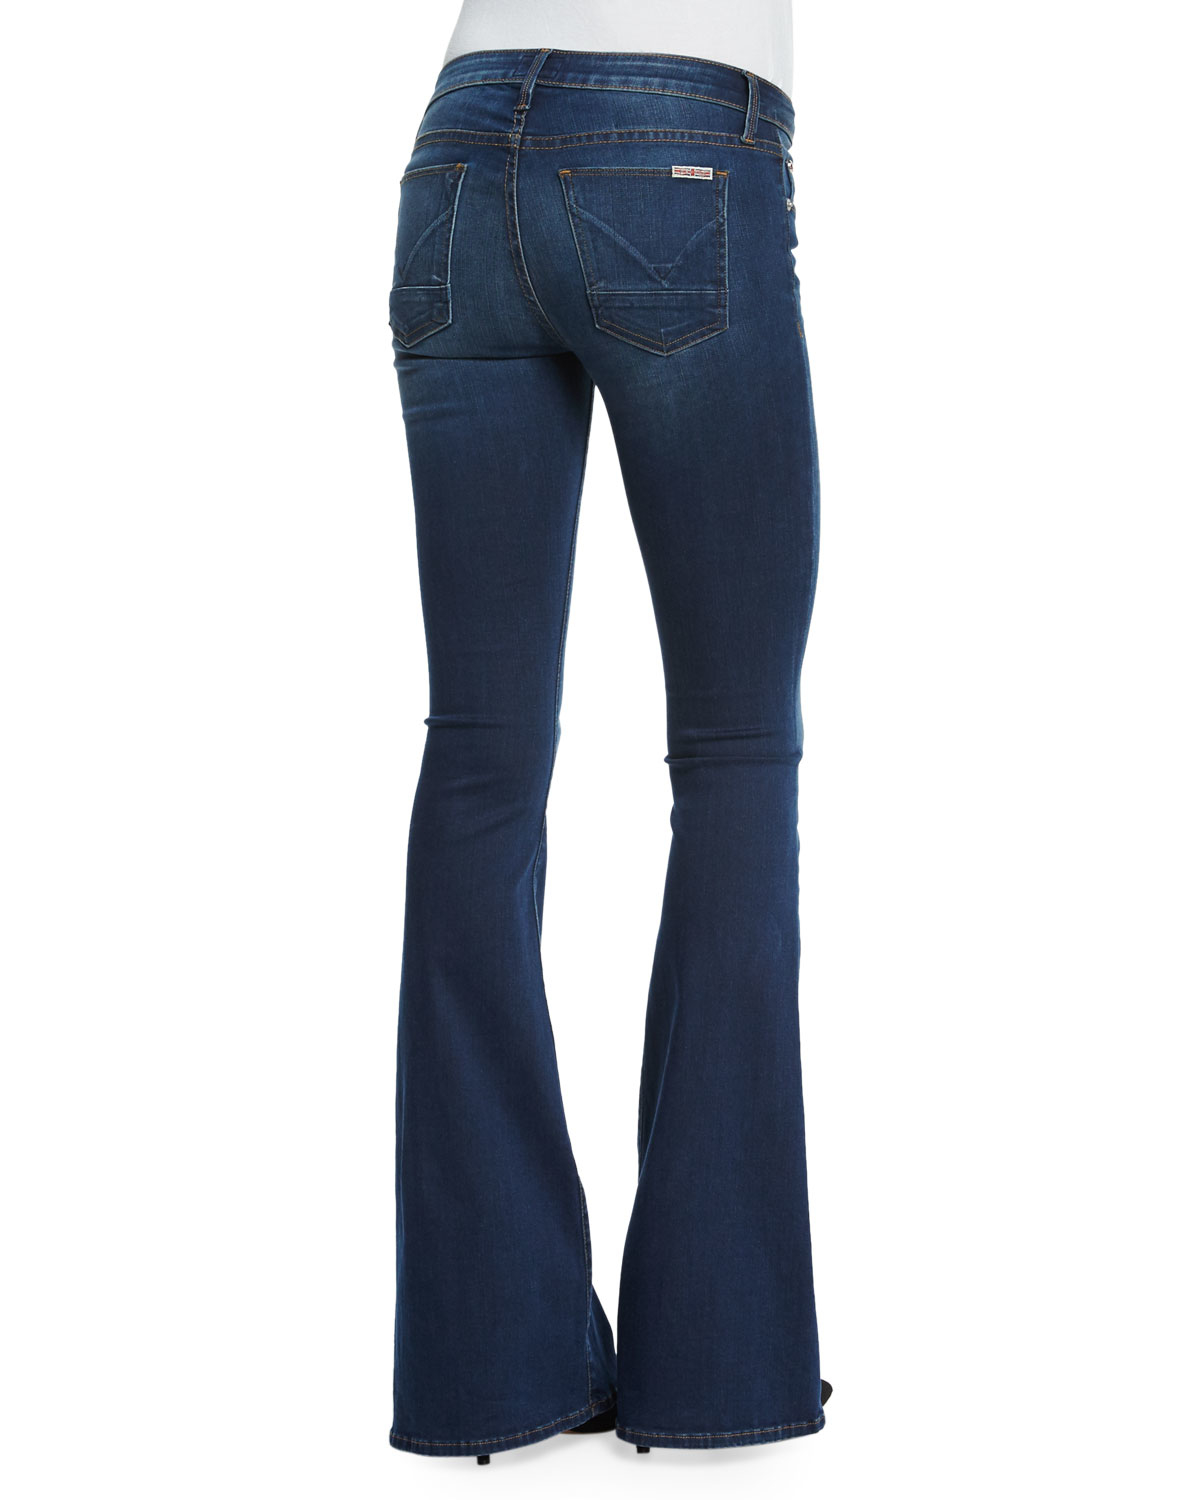 Hudson jeans Mia Mid-rise Flare-leg Jeans in Blue | Lyst